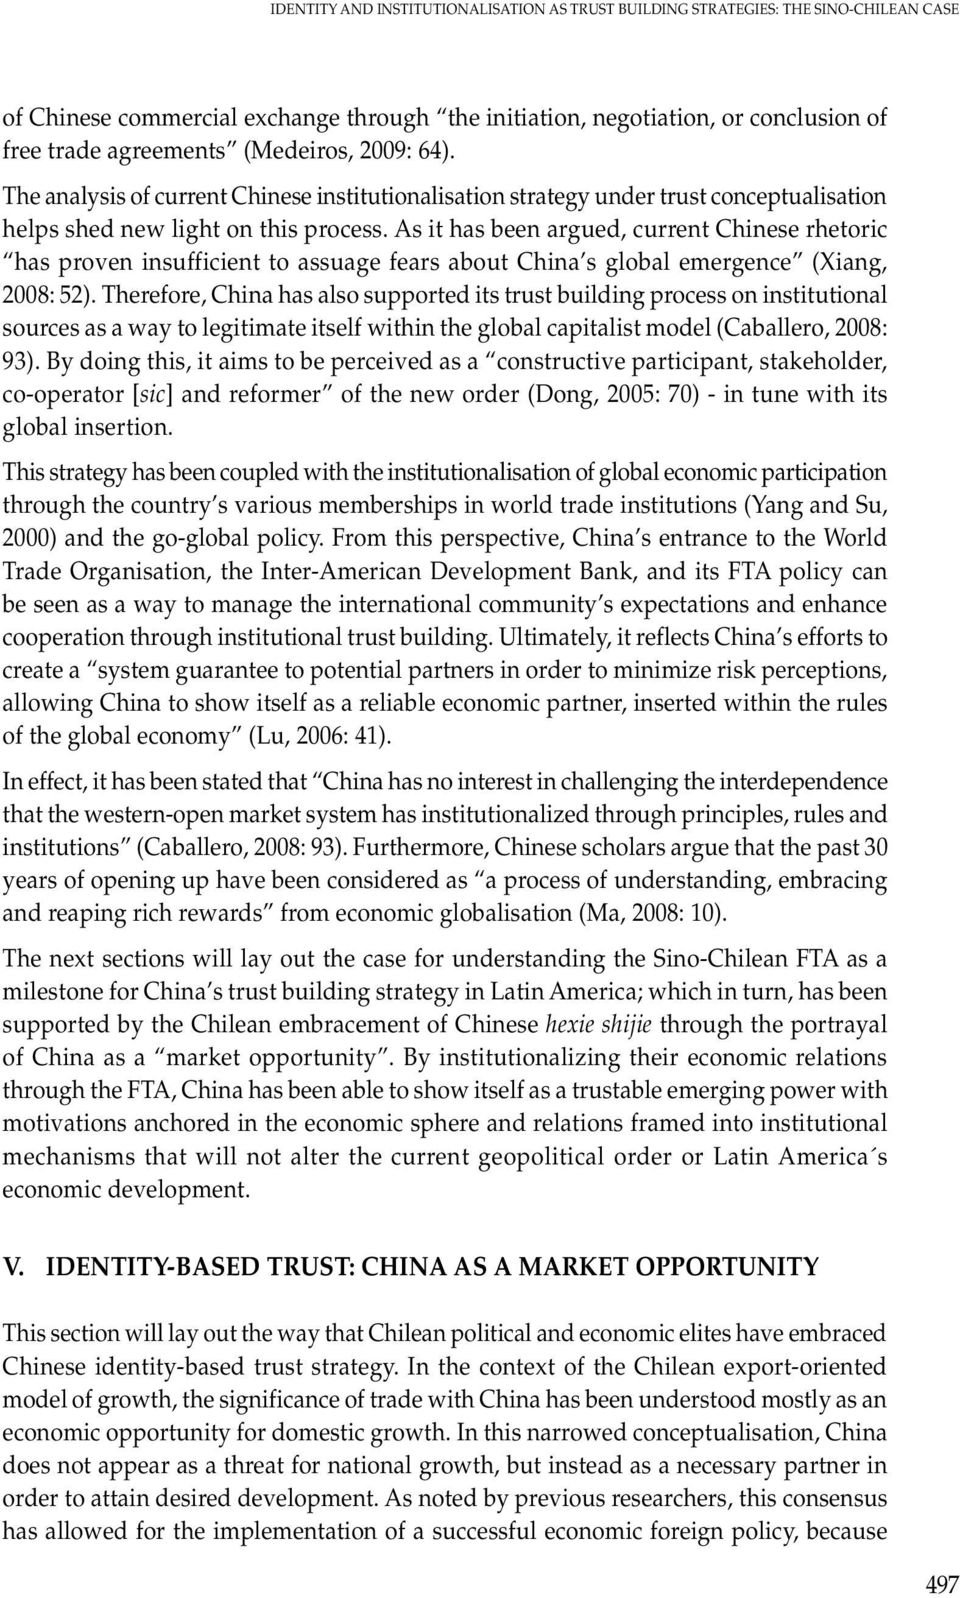 As it has been argued, current Chinese rhetoric has proven insufficient to assuage fears about China s global emergence (Xiang, 2008: 52).